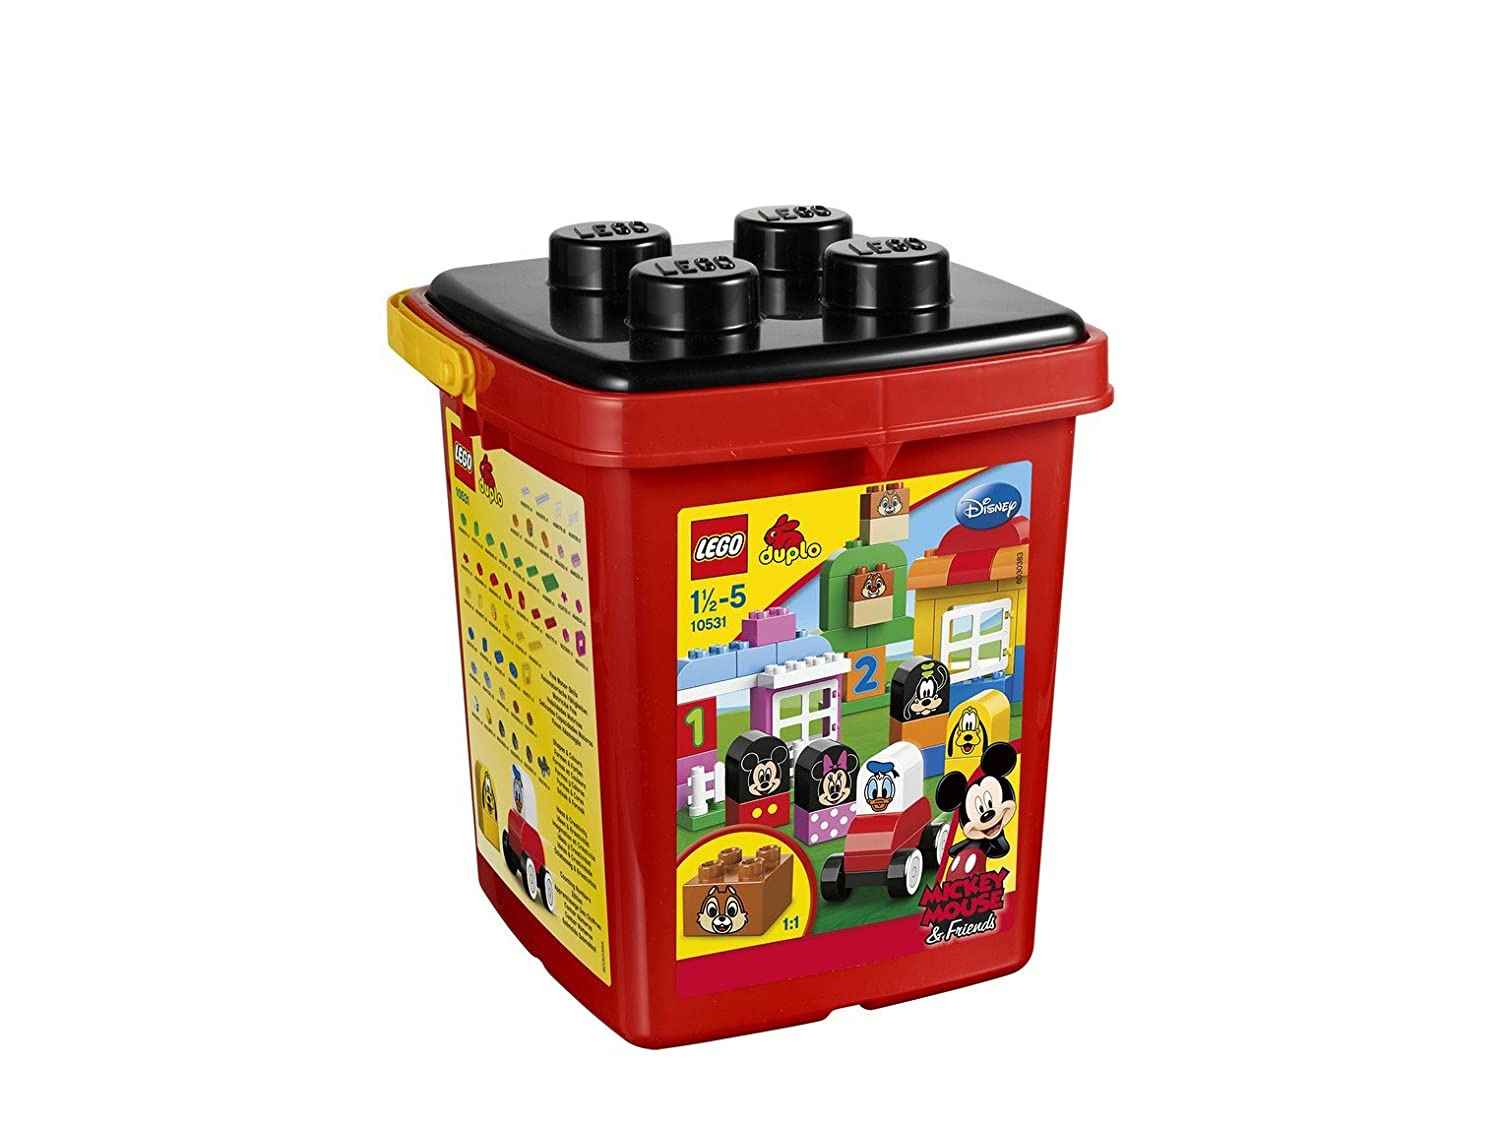 Lego Duplo Building Toy with Mickey and Minnie Mouse, Donald Duck, Goofy, and Pluto